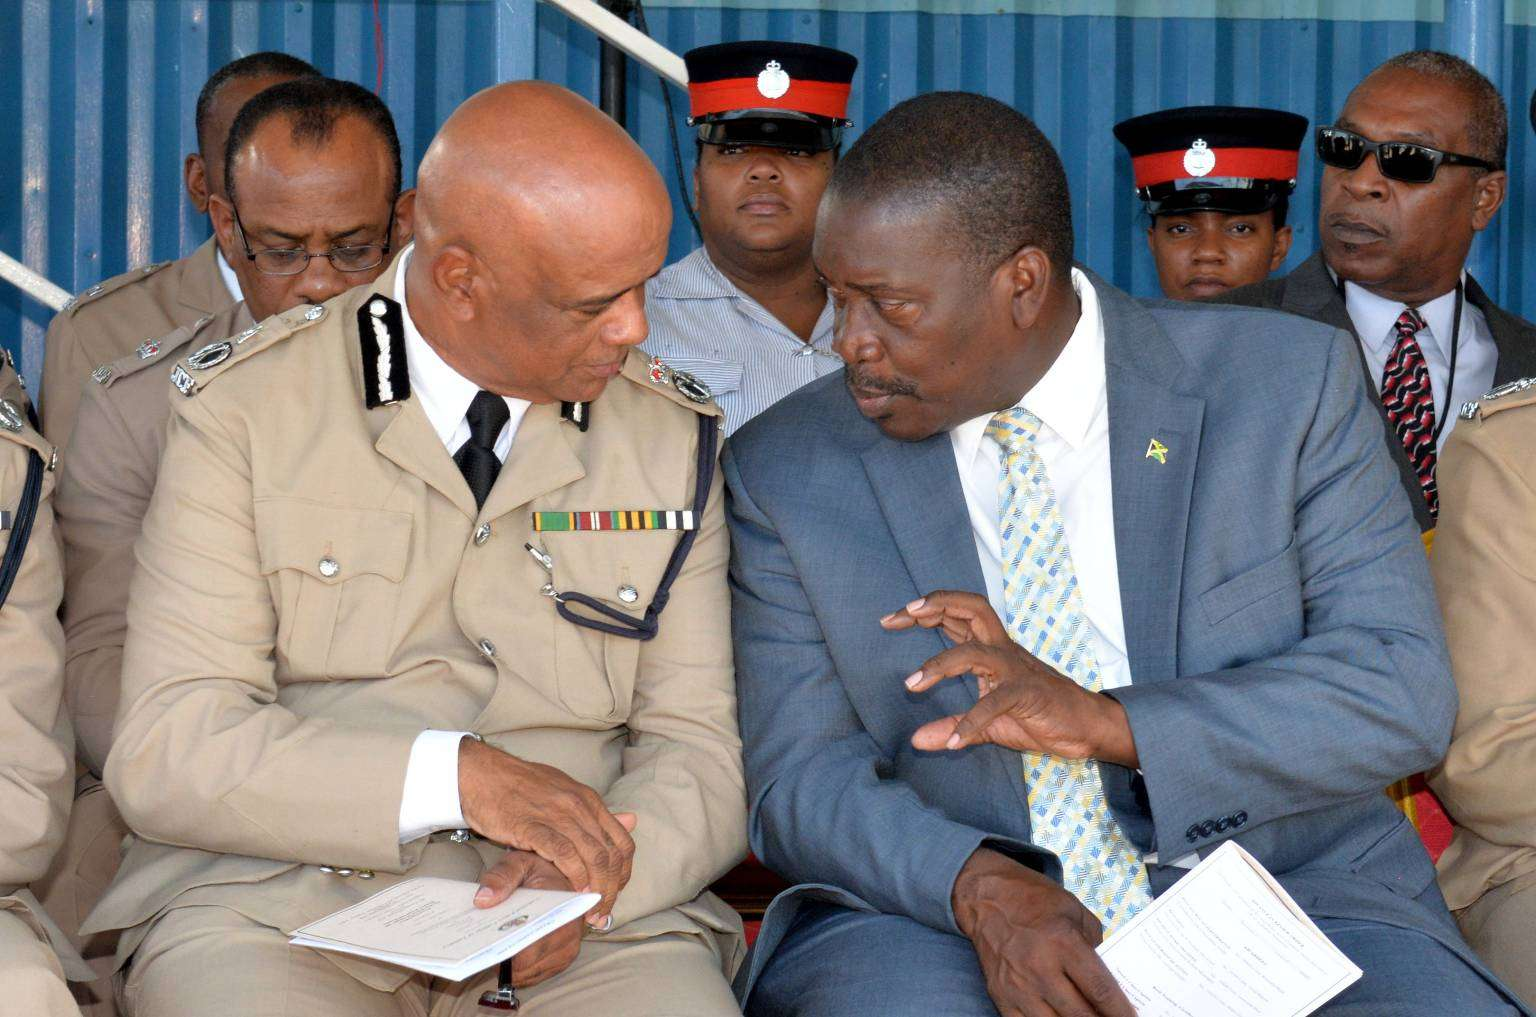 Security Minister Reiterates Call for JCF Promotions